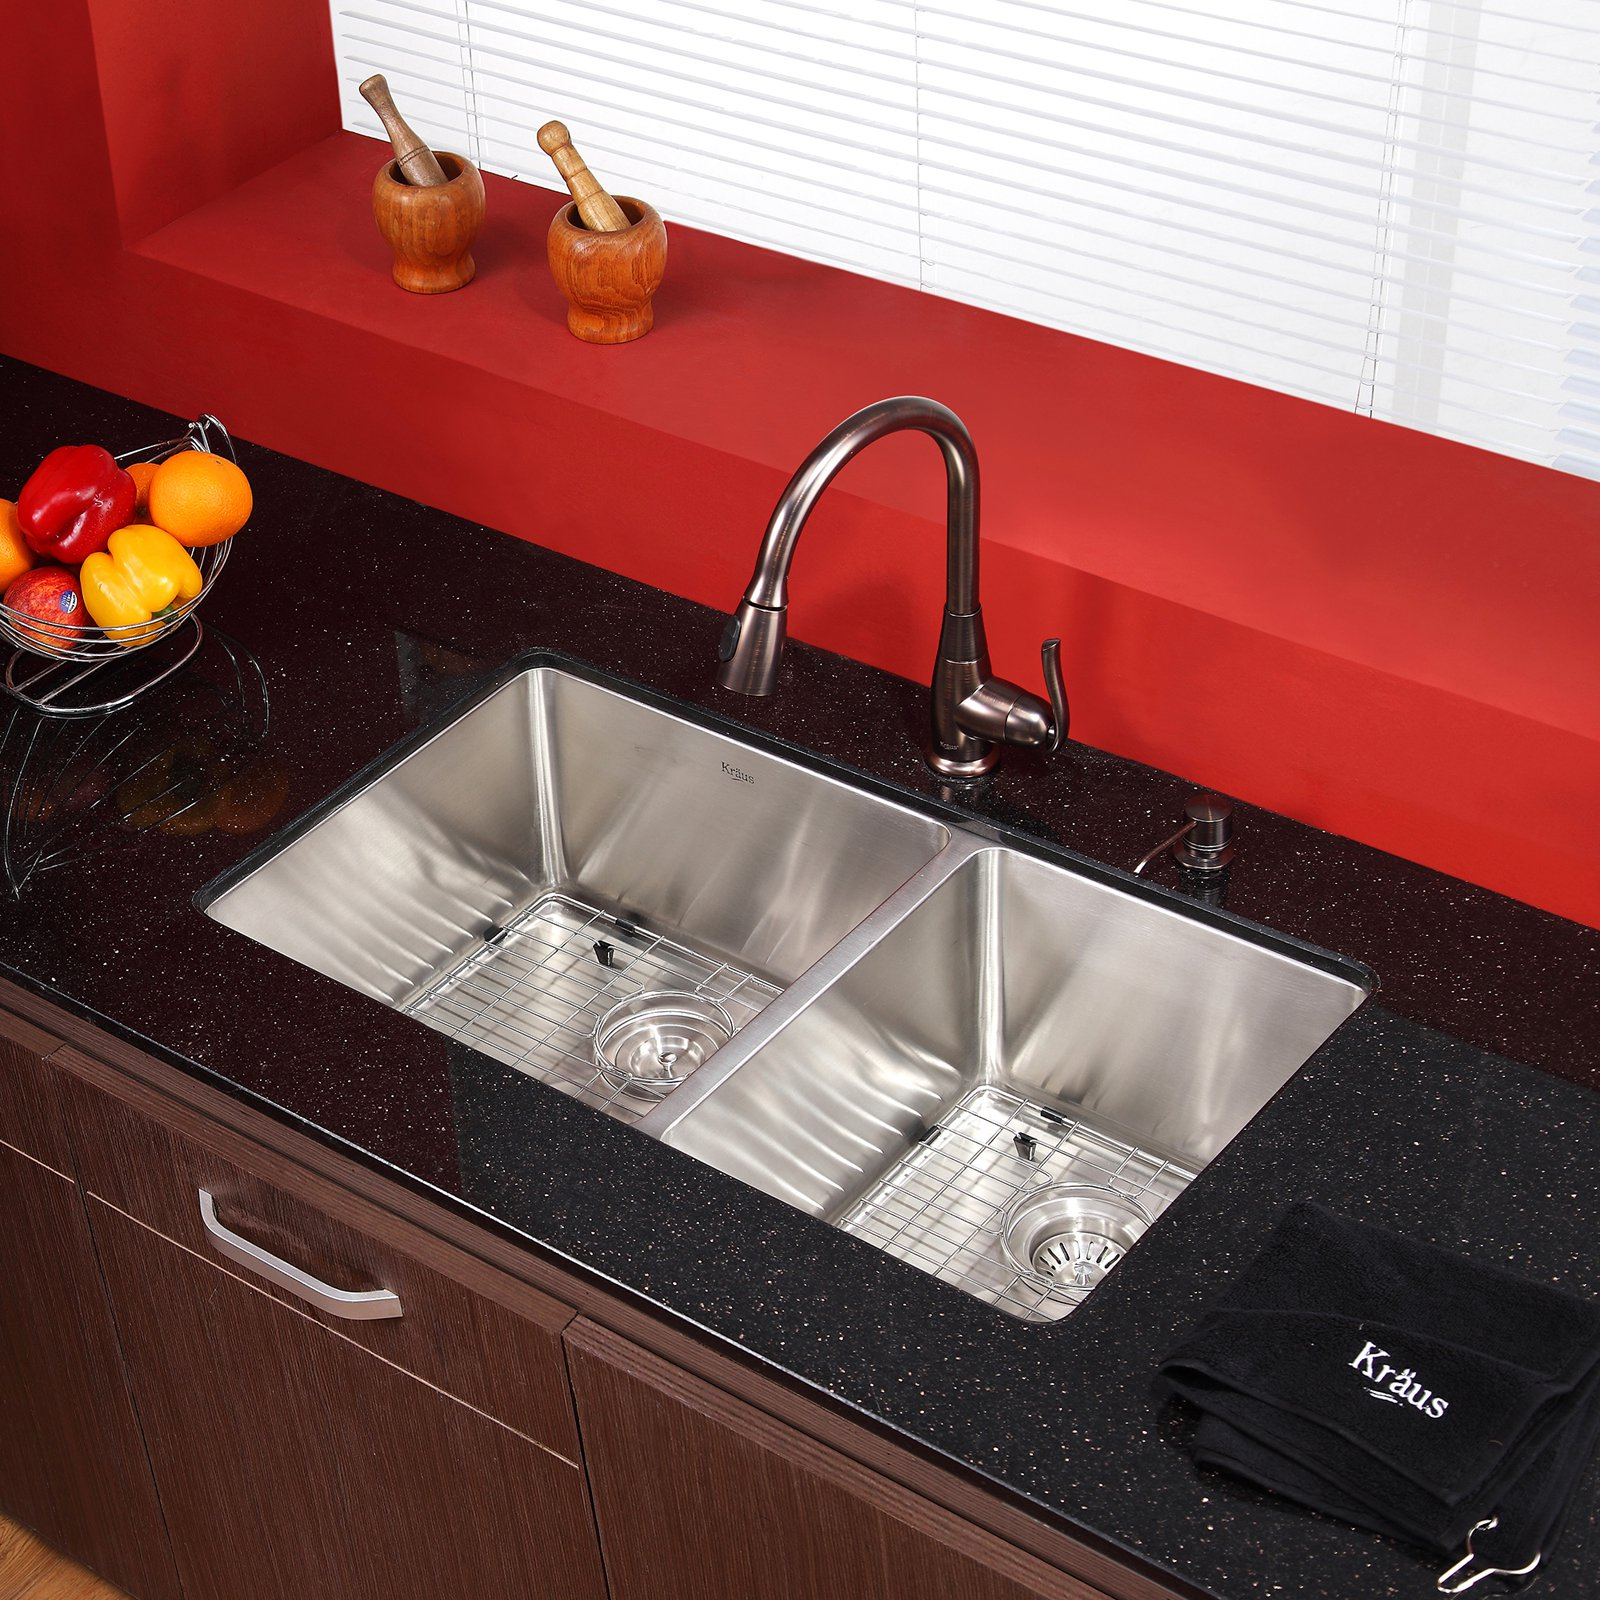 Kraus KHU103-33-KPF2230-KSD30 Double Basin Undermount Kitchen Sink with Faucet